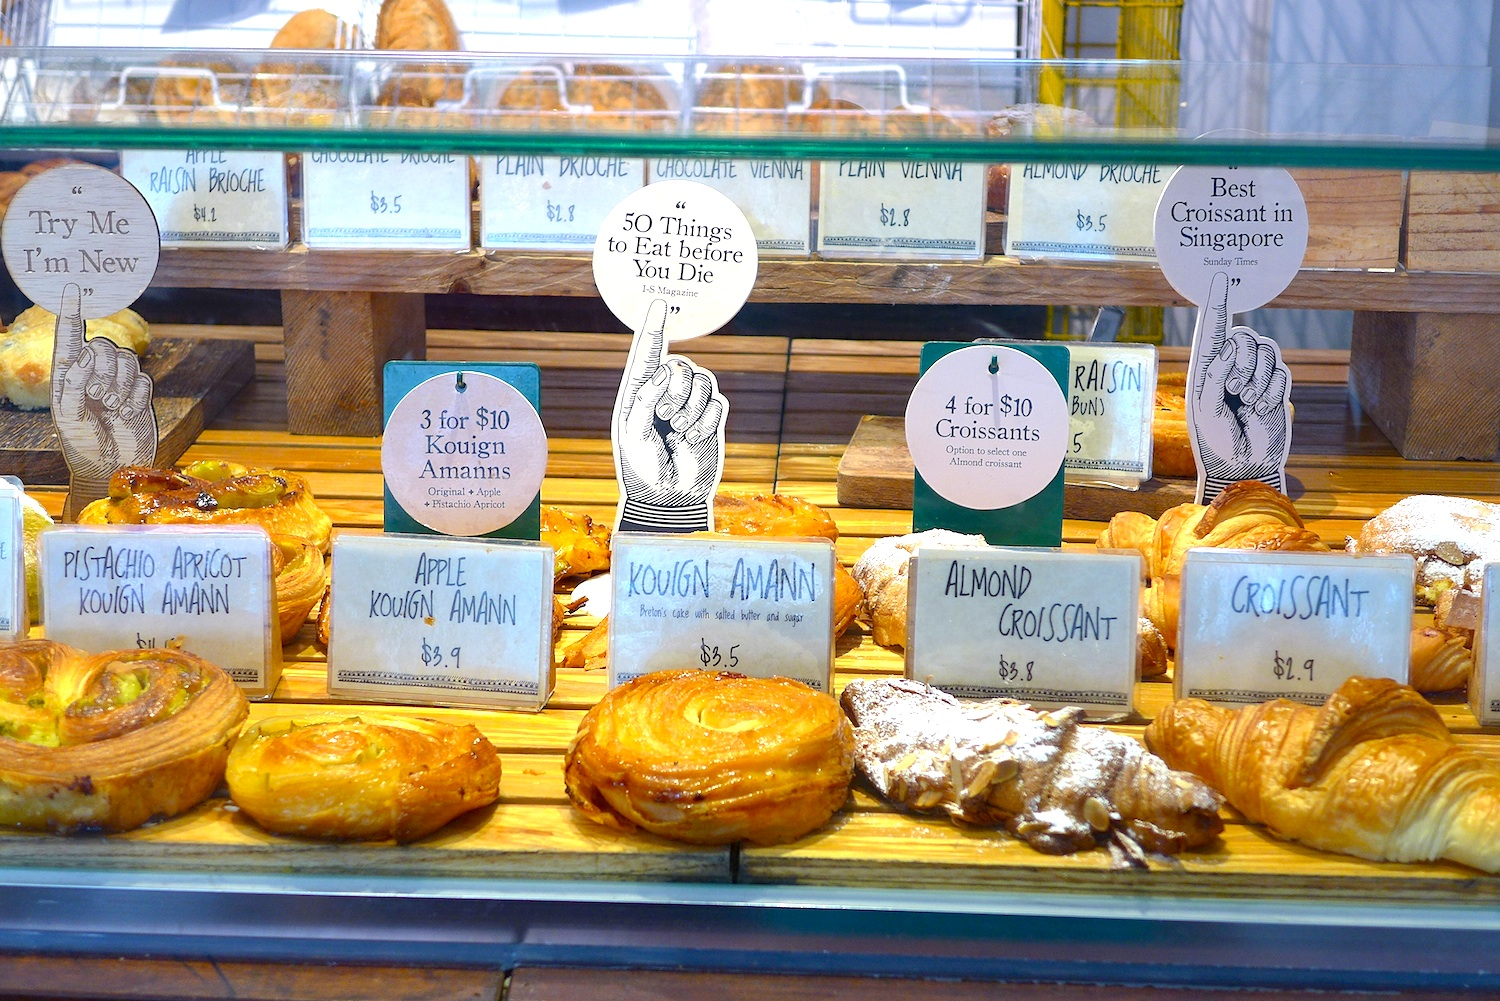 Wide and nice selection of Croissants, Kouign Amann and other breads.